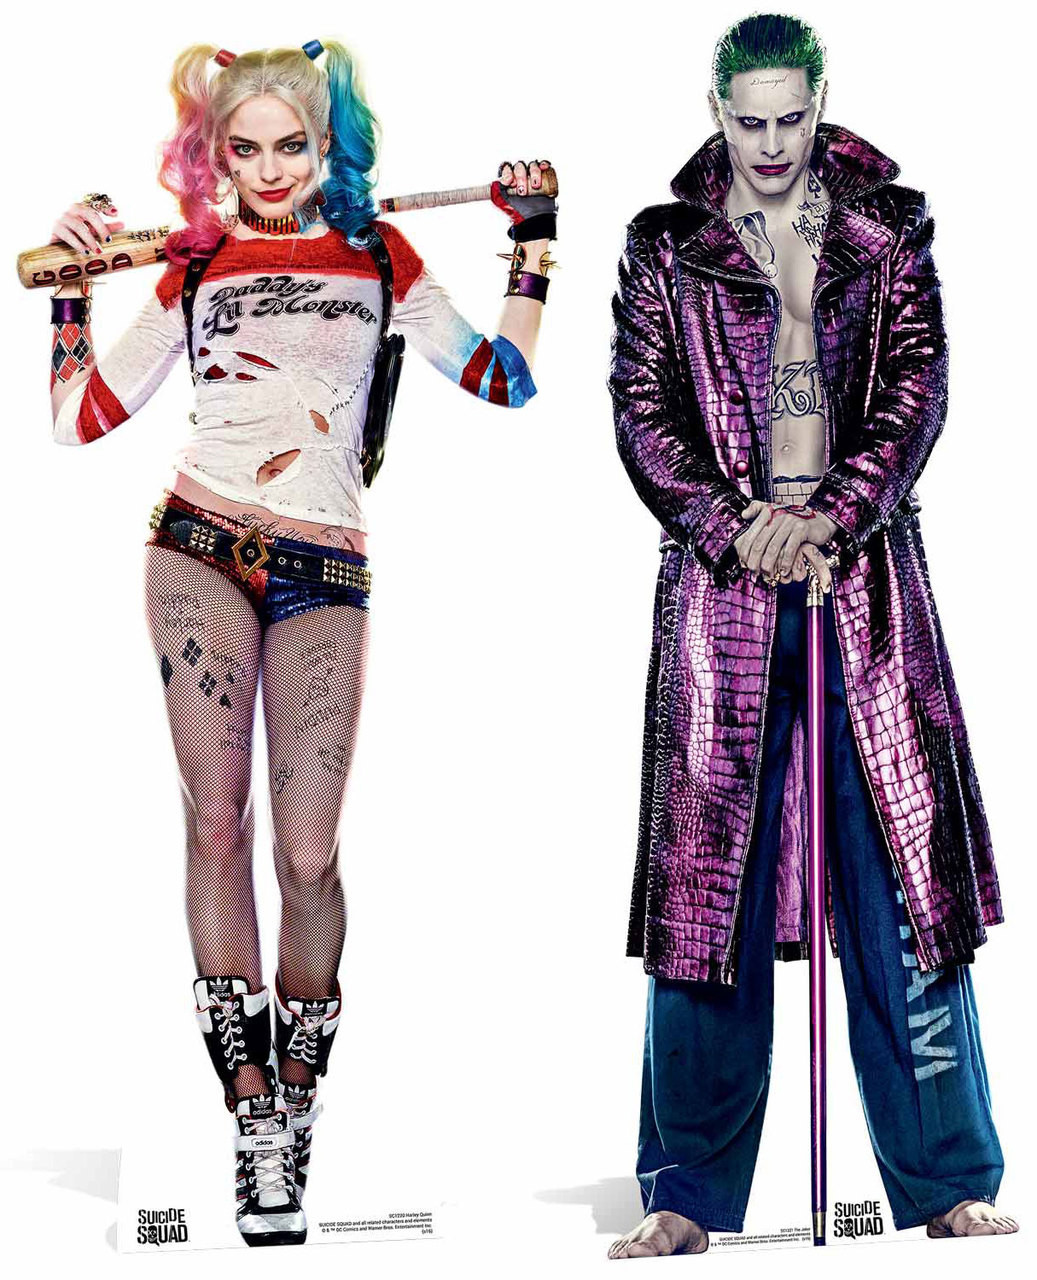 Star Wars Themed Bedroom Suicide Squad Harley Quinn Amp The Joker Lifesize Cardboard